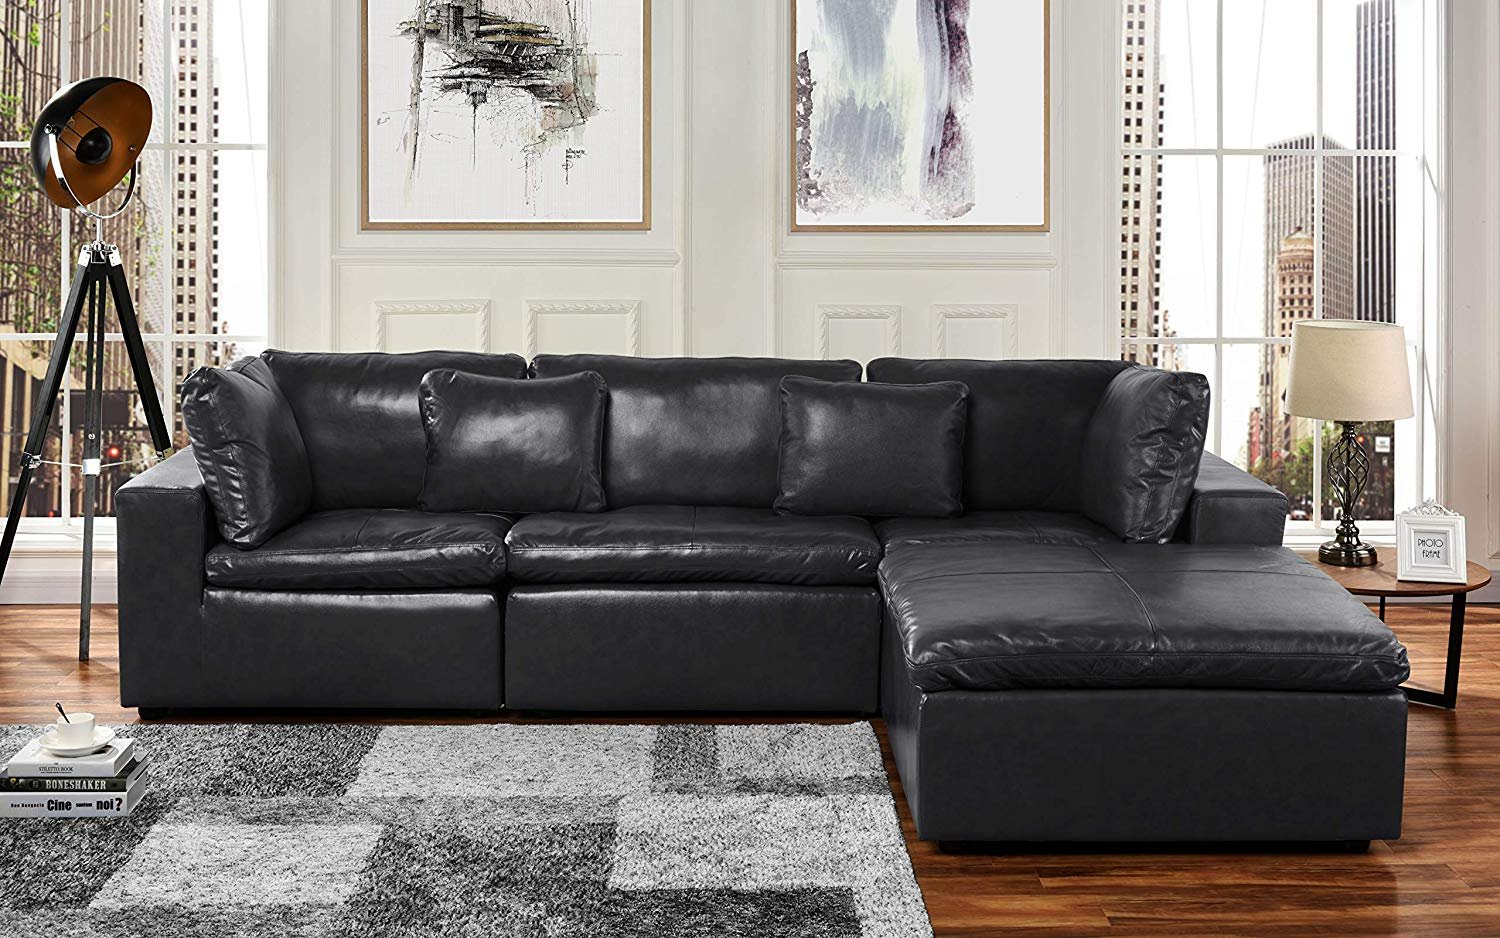 Large Leather Sectional Sofa, L Shape Couch With Wide Pertaining To Sectional Sofas (View 8 of 15)